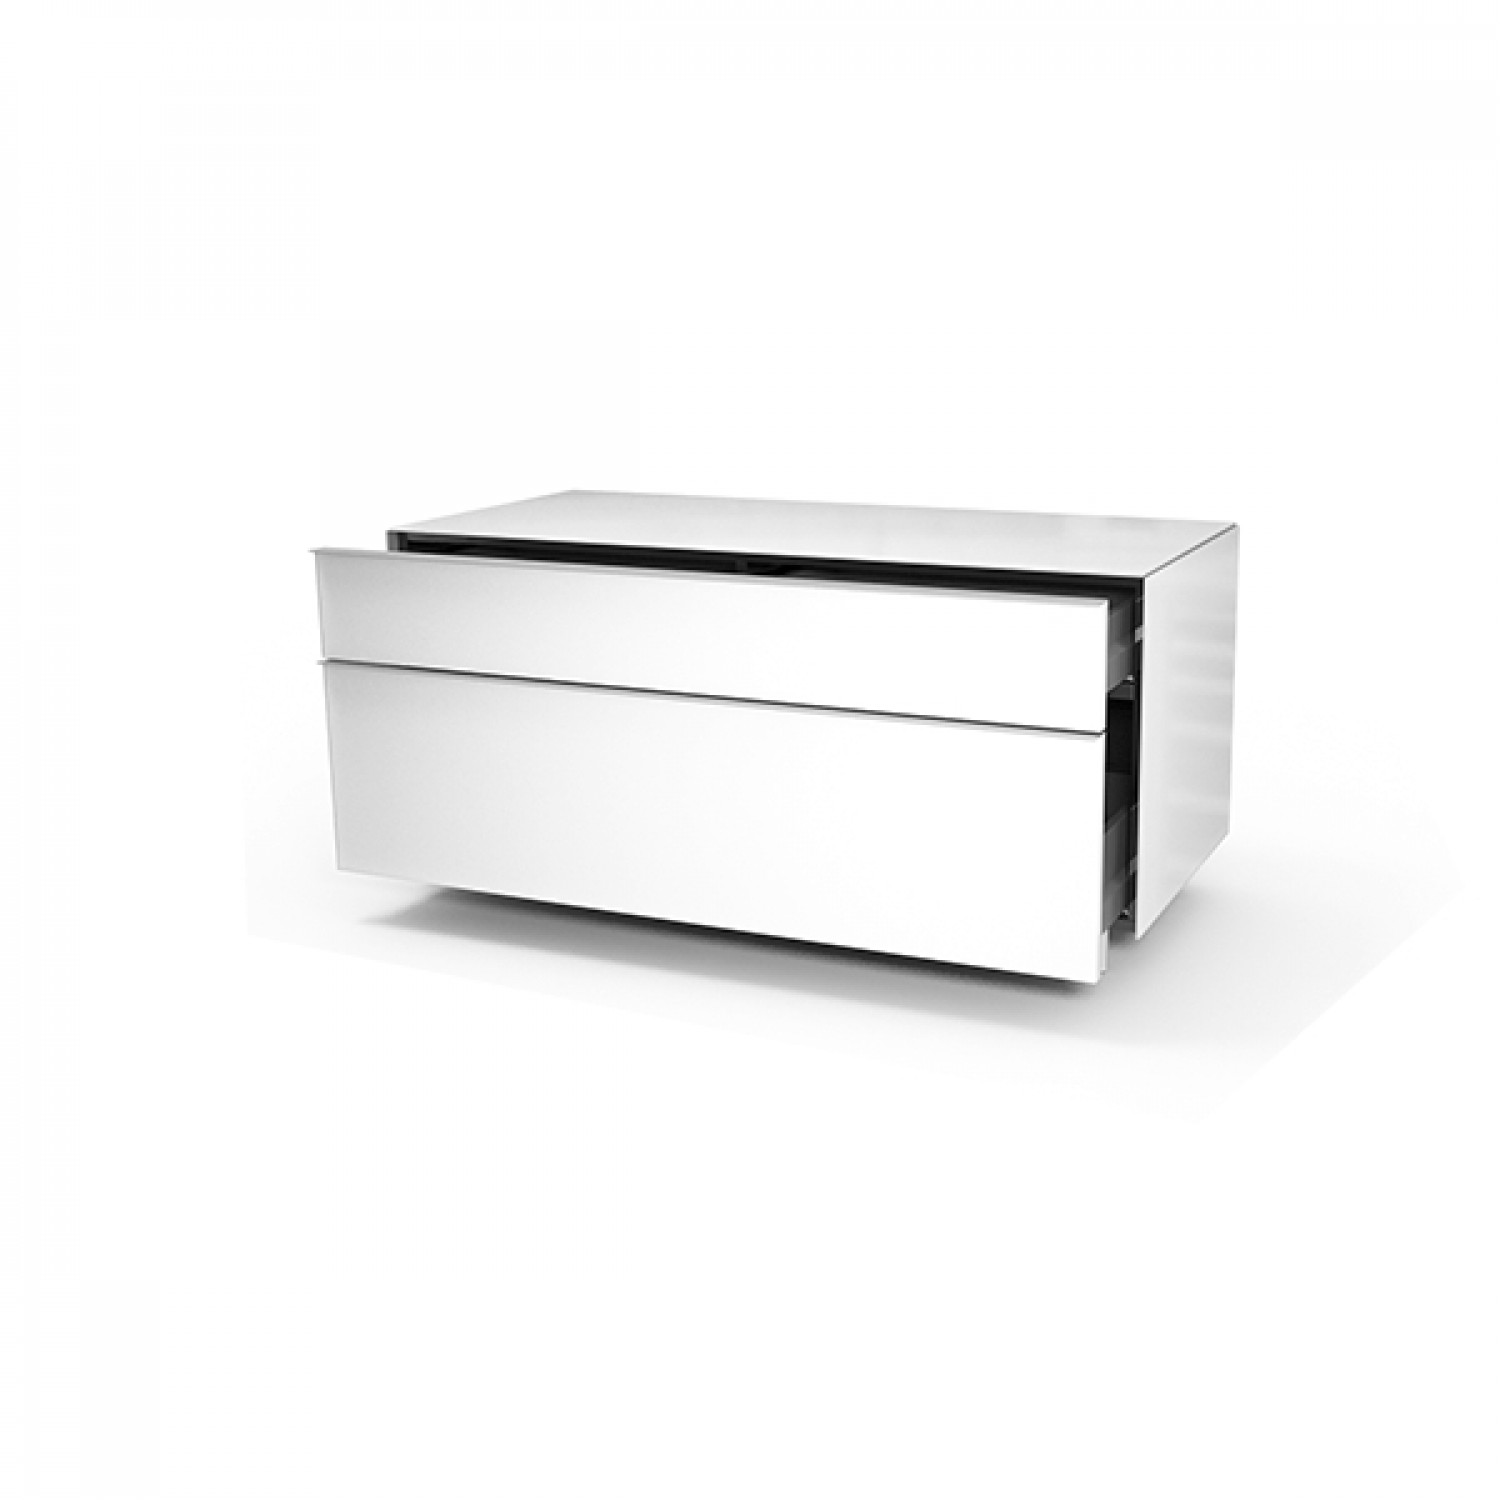 Spectral Scala Spectral Scala Sc1107 Tv Cabinet